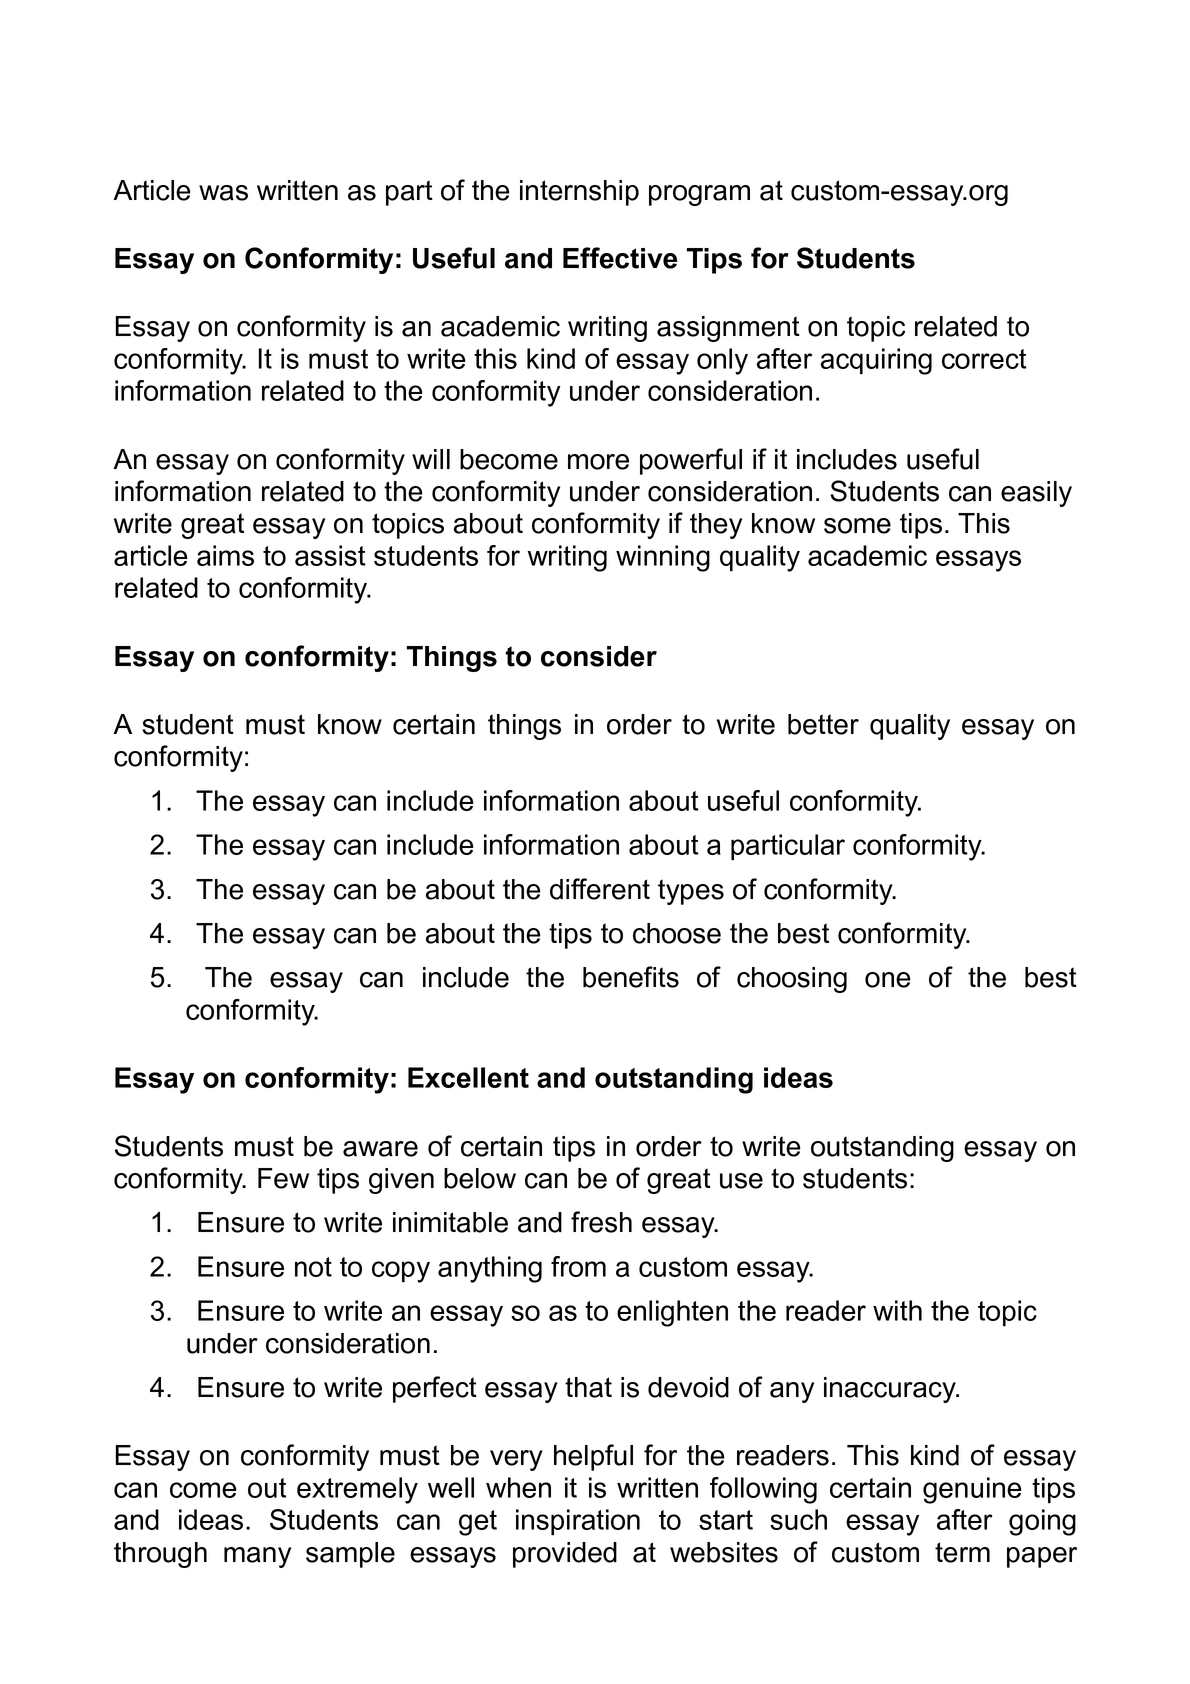 Calameo Essay On Conformity Useful And Effective Tips